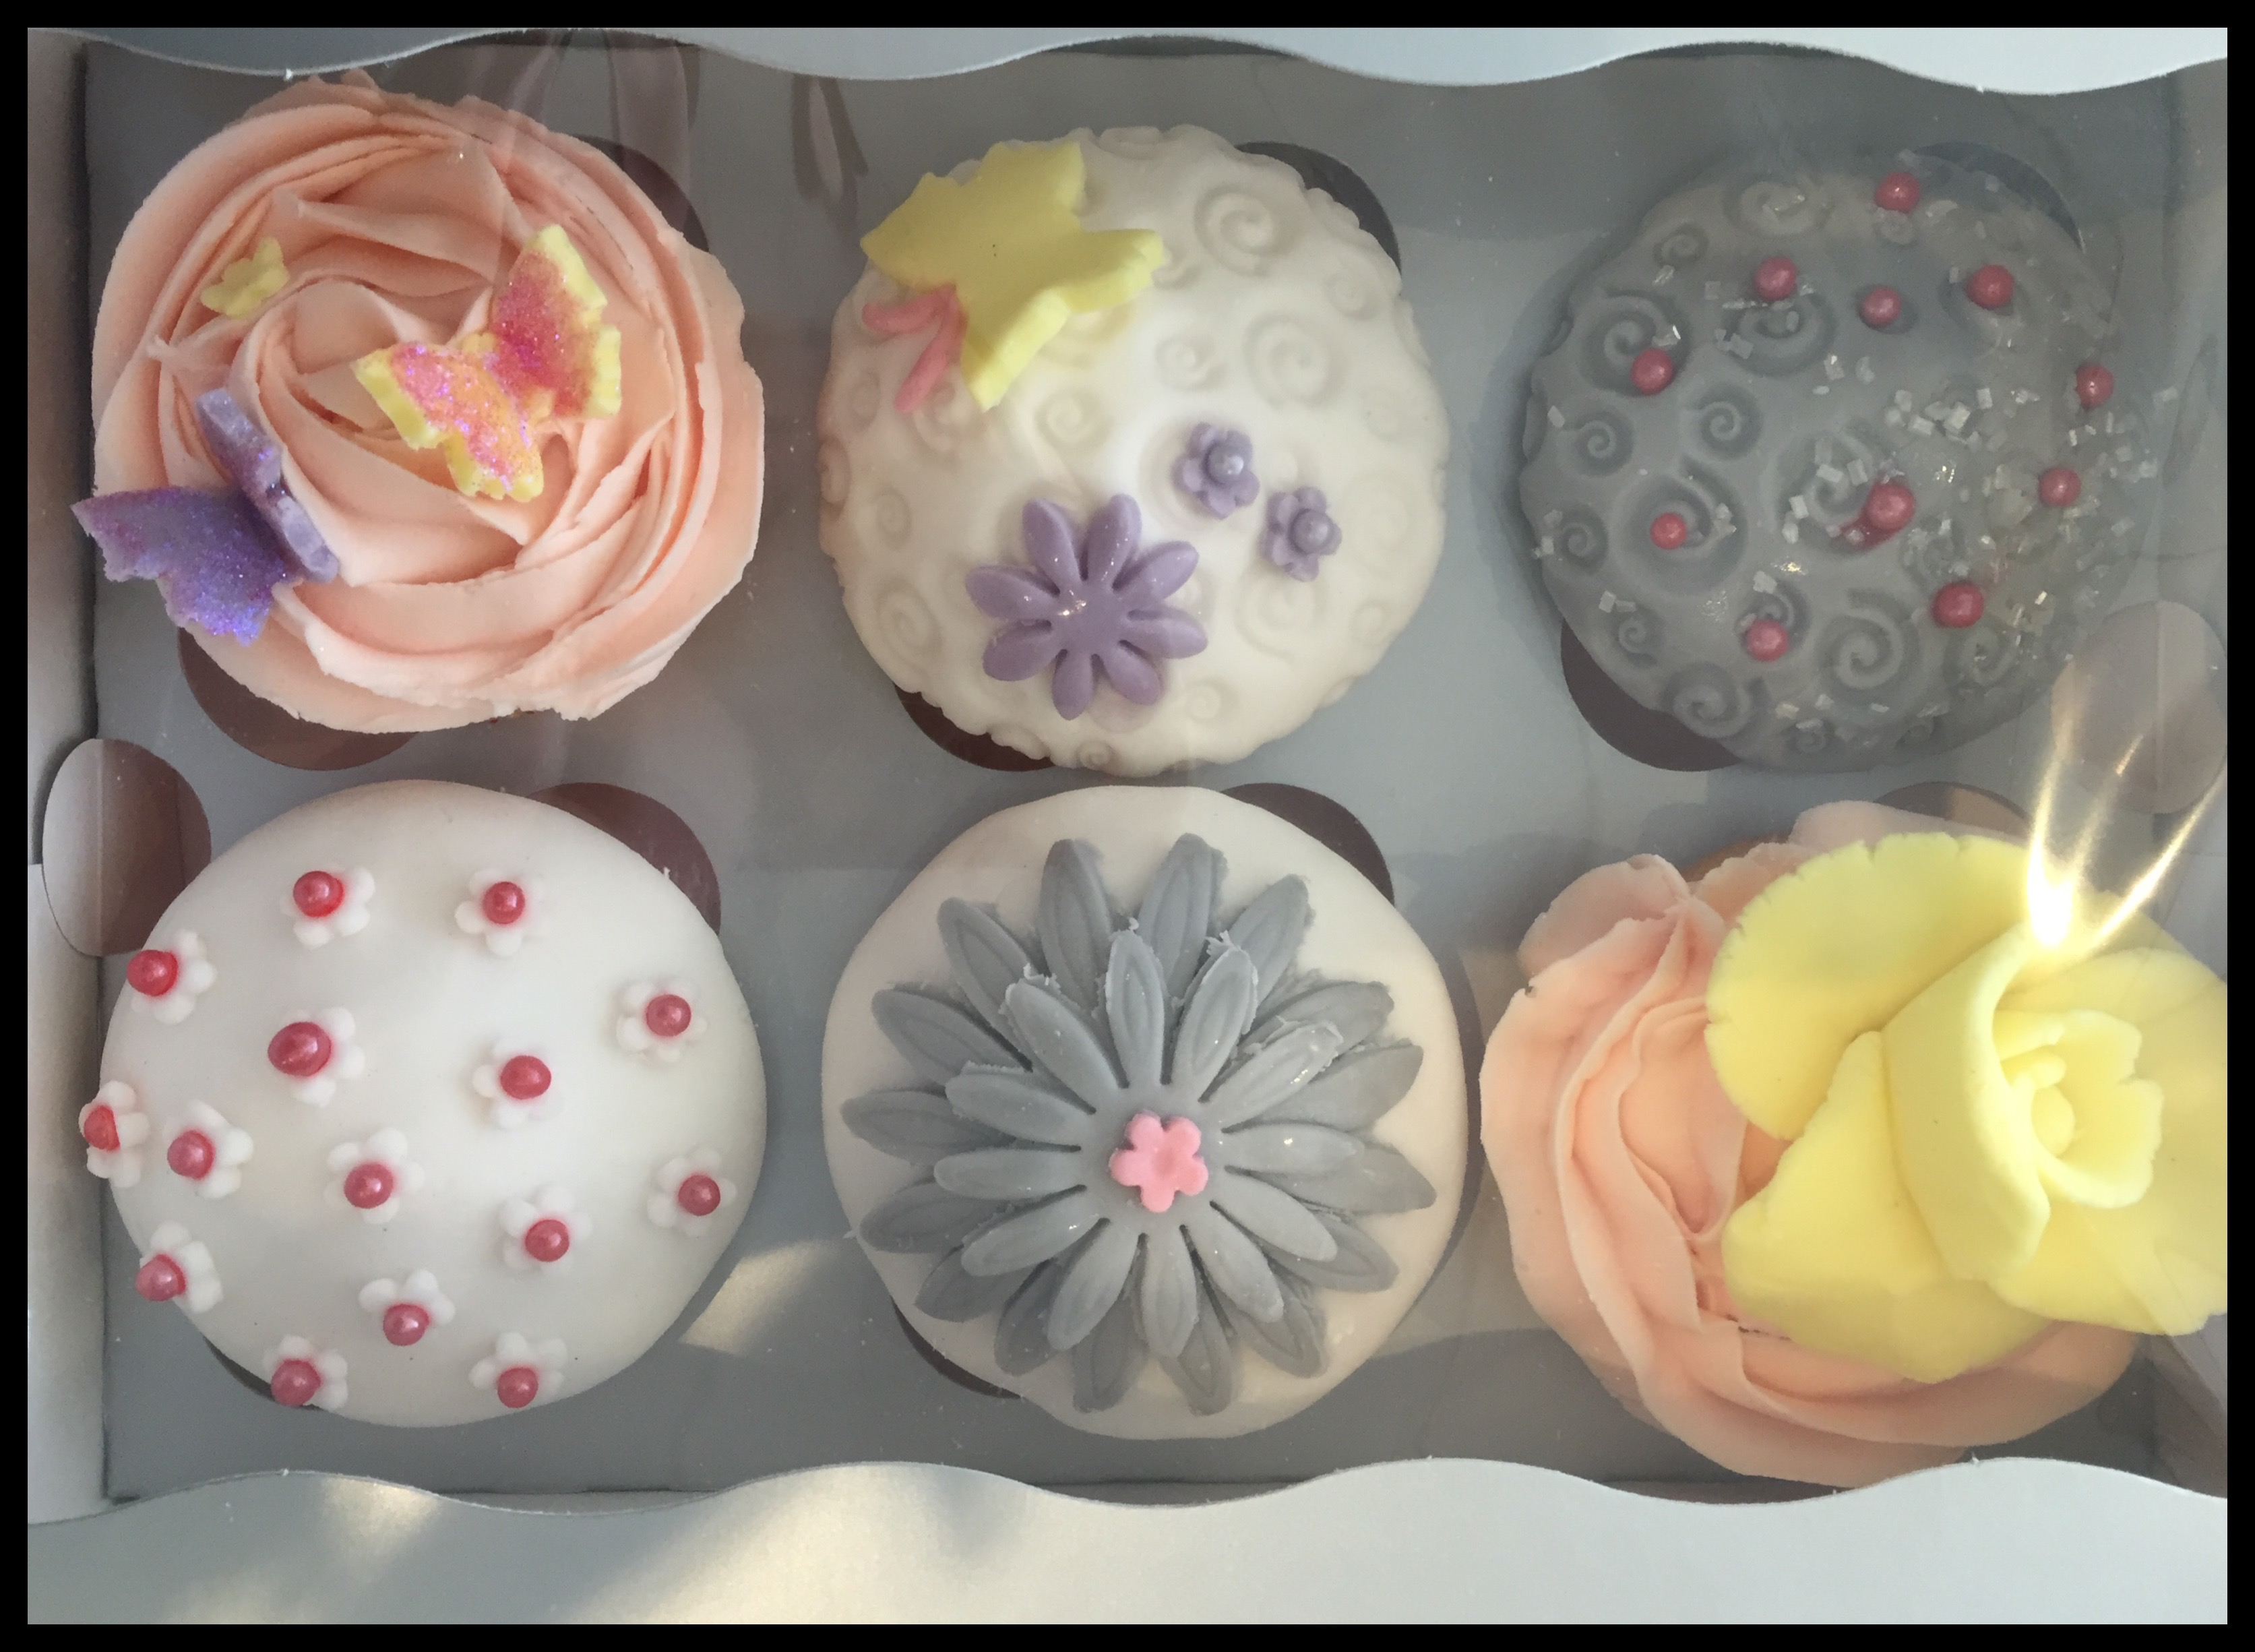 Cupcake Decorating Ideas Blog : Decorating cupcakes on a Sunday morning. Becci s blog